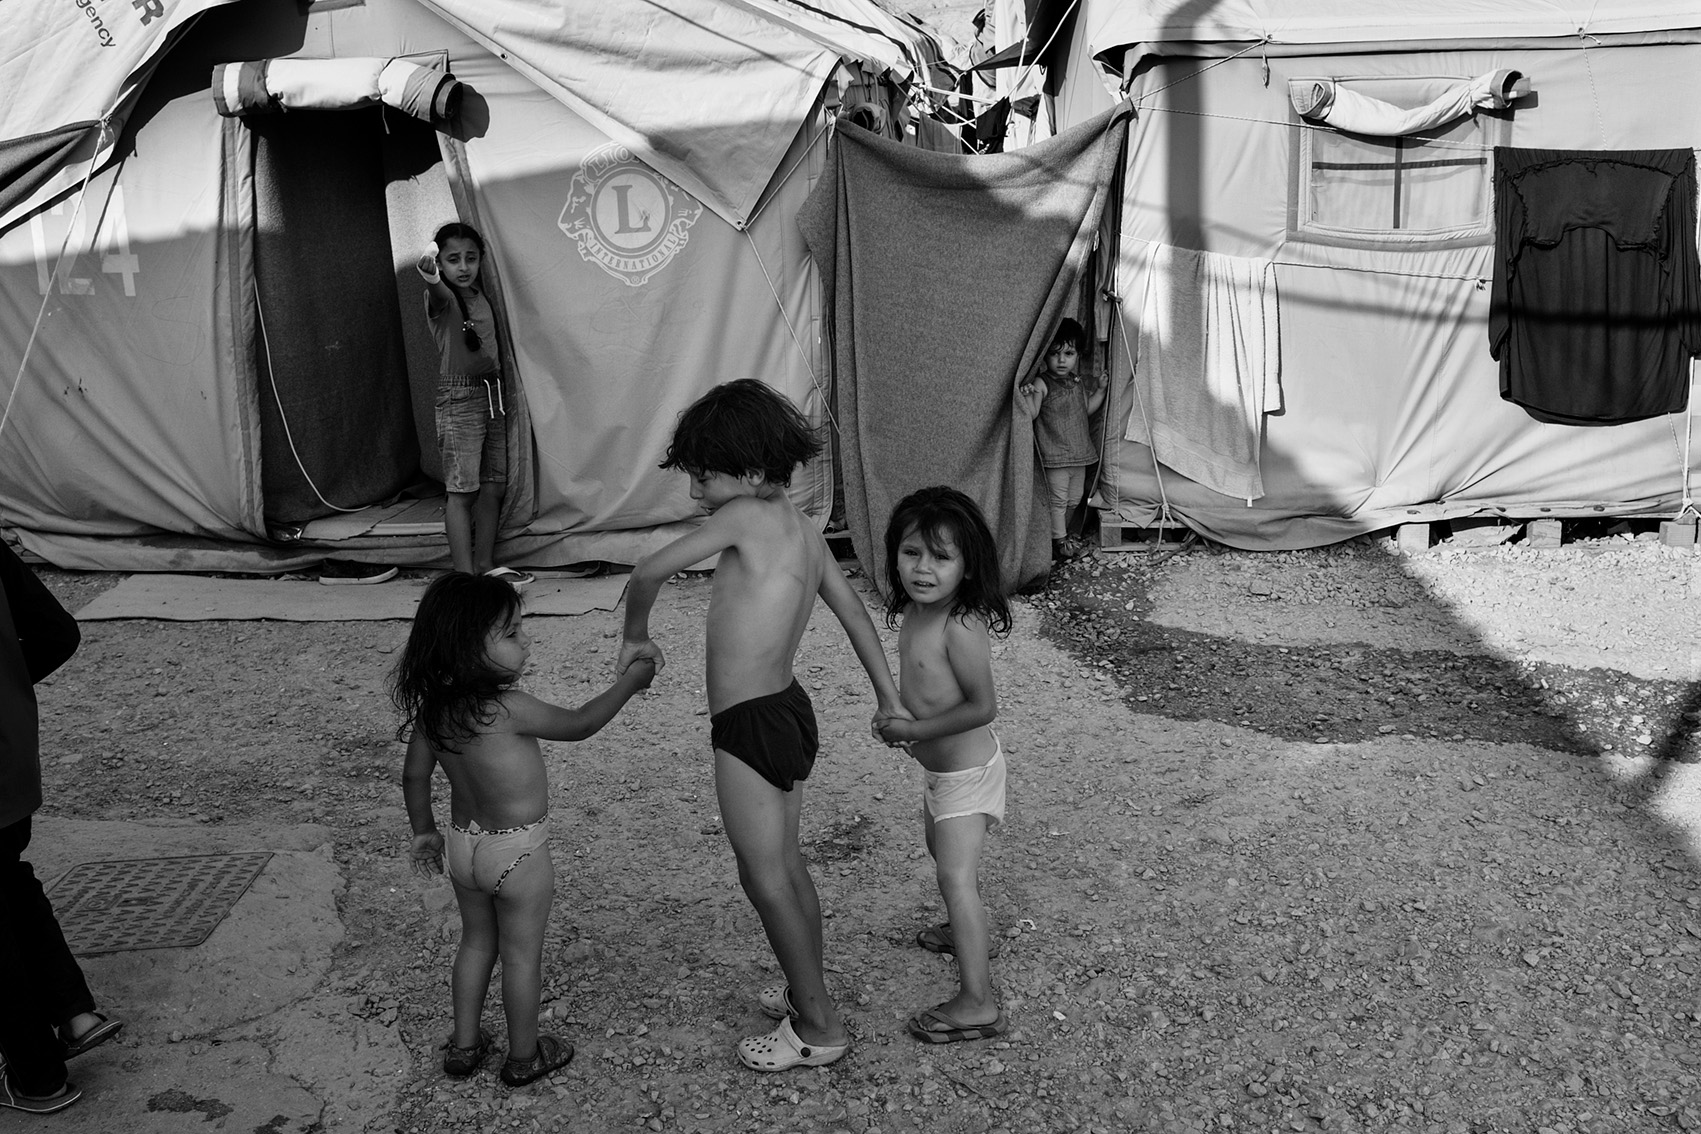 Children walking hand-in-hand inside refugee camp Moria, lesbos, Greece